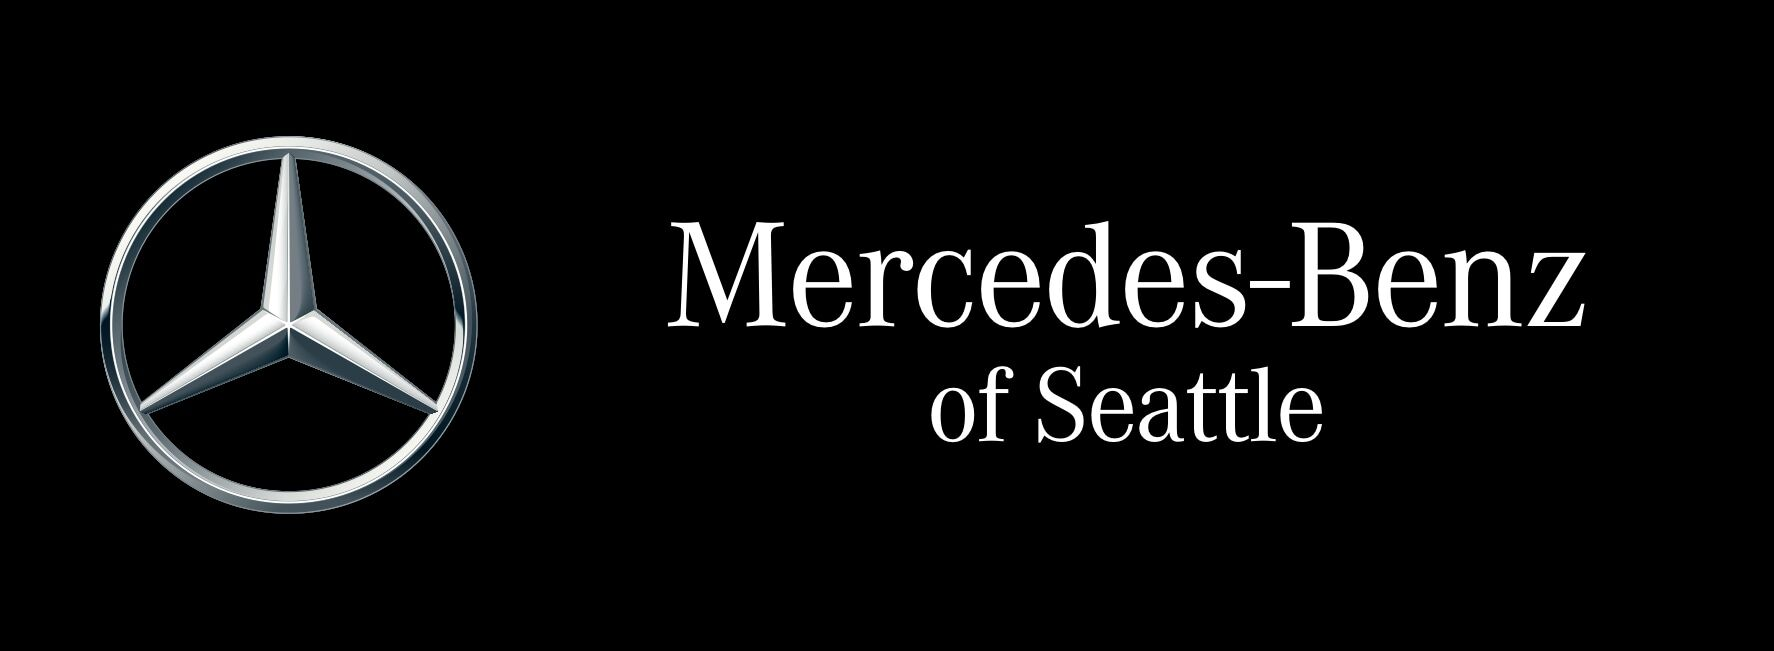 Mercedes-Benz of Seattle logo